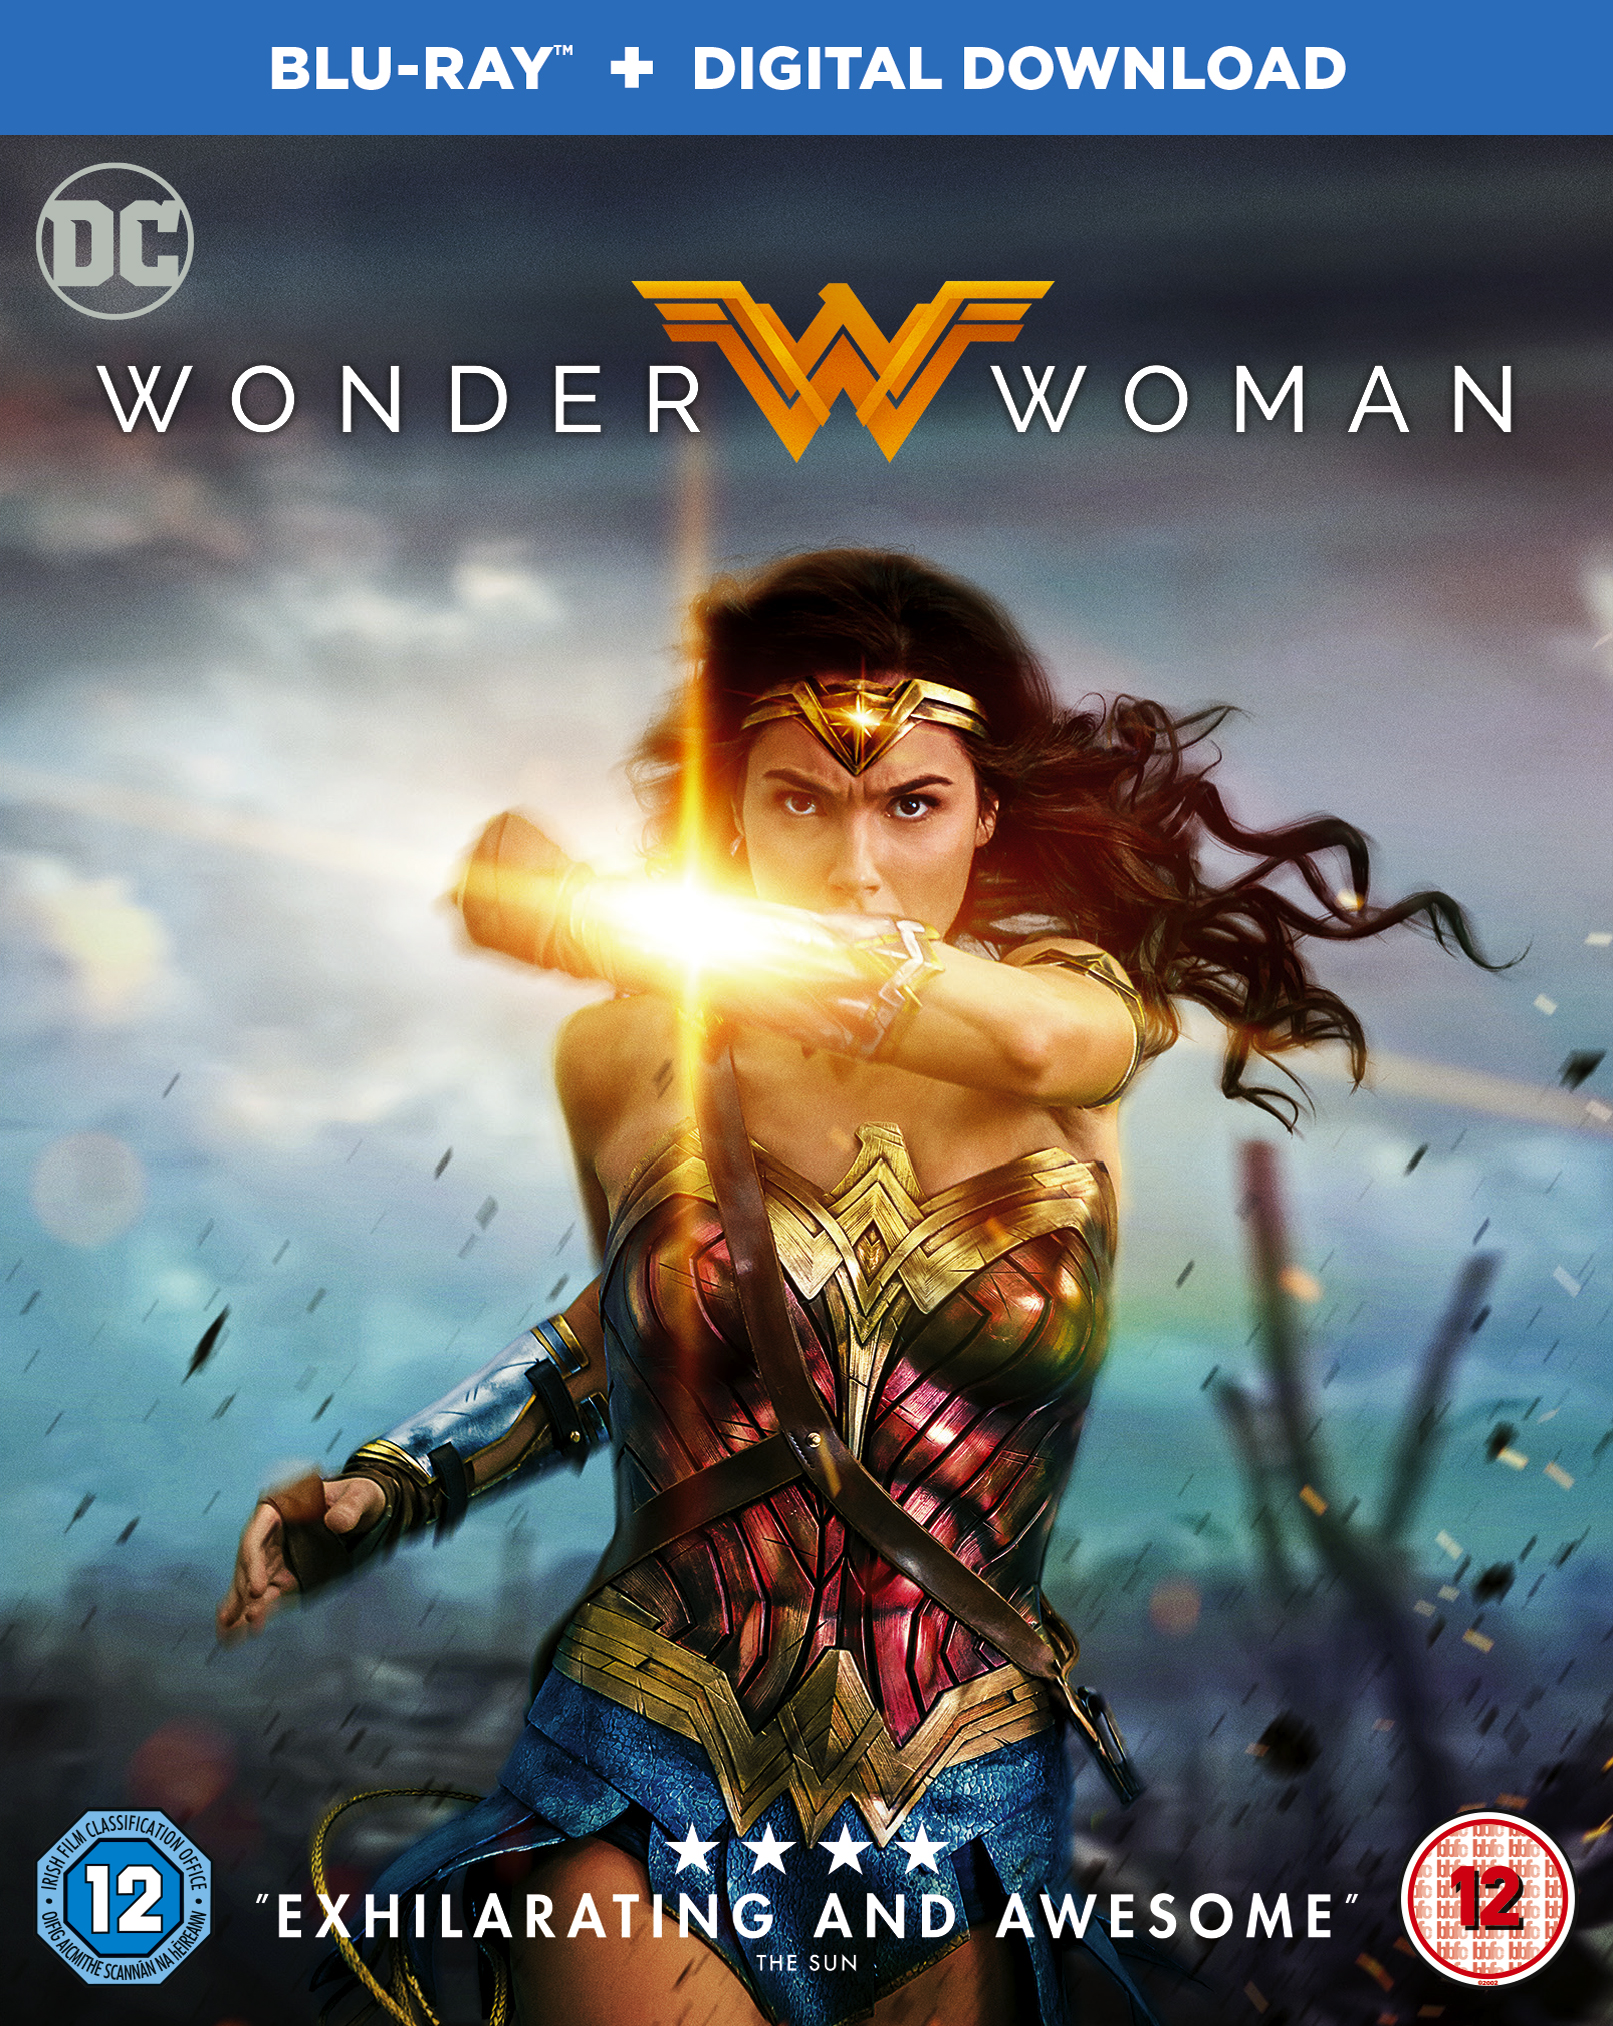 WONDER-WOMAN_TEMP-PACKSHOT_BD_2D.jpg